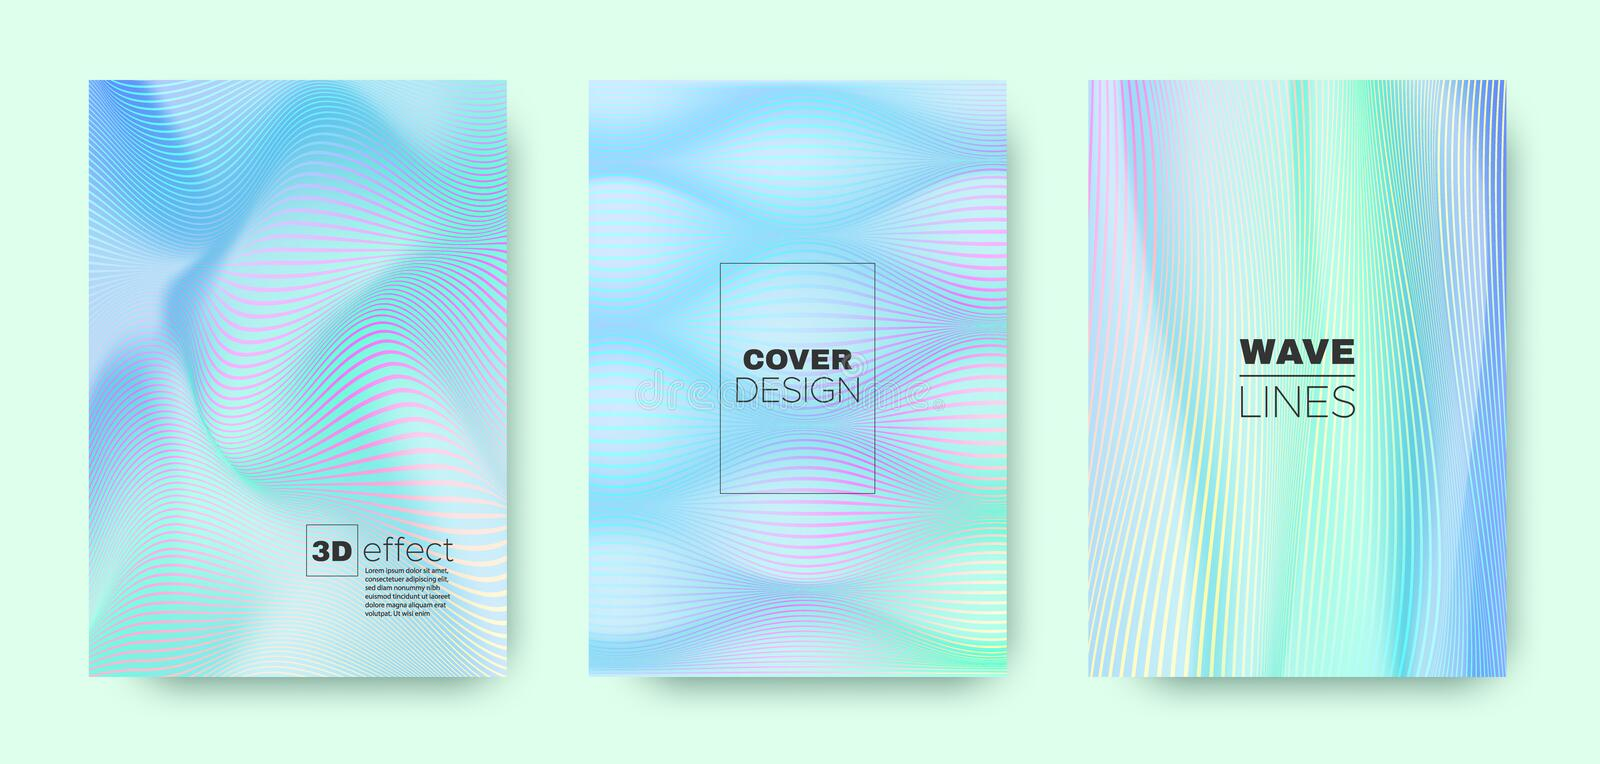 3d Line Design. Wave Flow Cover. Pastel Dynamic. Background. Gradient Distorted Texture. Gradient 3d Line Concept. Wave Flow Poster. Violet Dynamic Wallpaper royalty free illustration